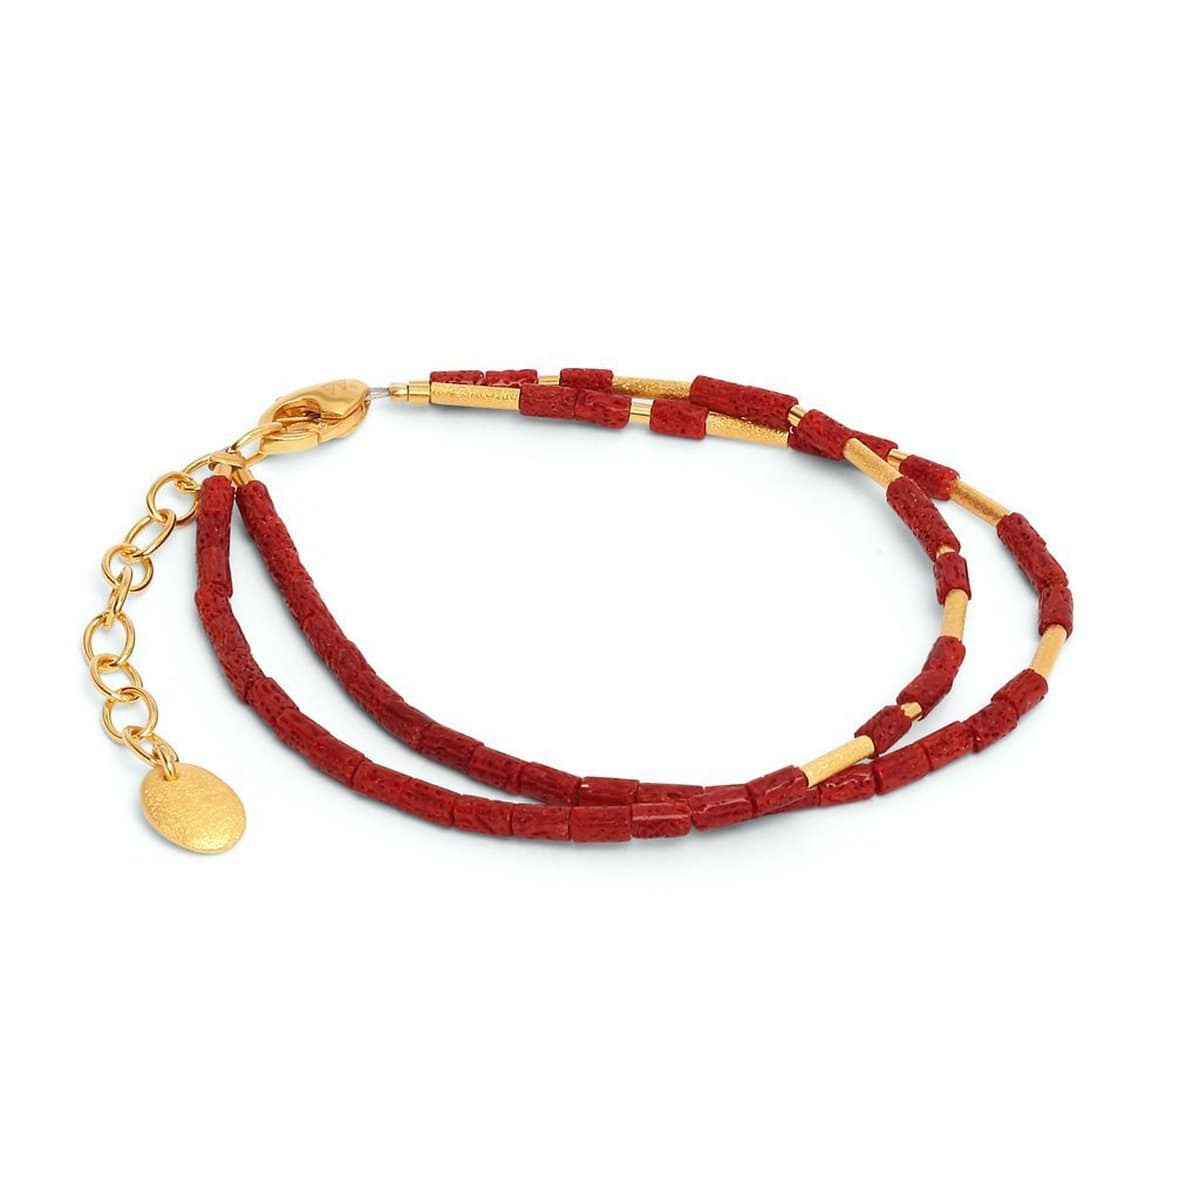 Clia Red Coral Bracelet - 82072296-Bernd Wolf-Renee Taylor Gallery